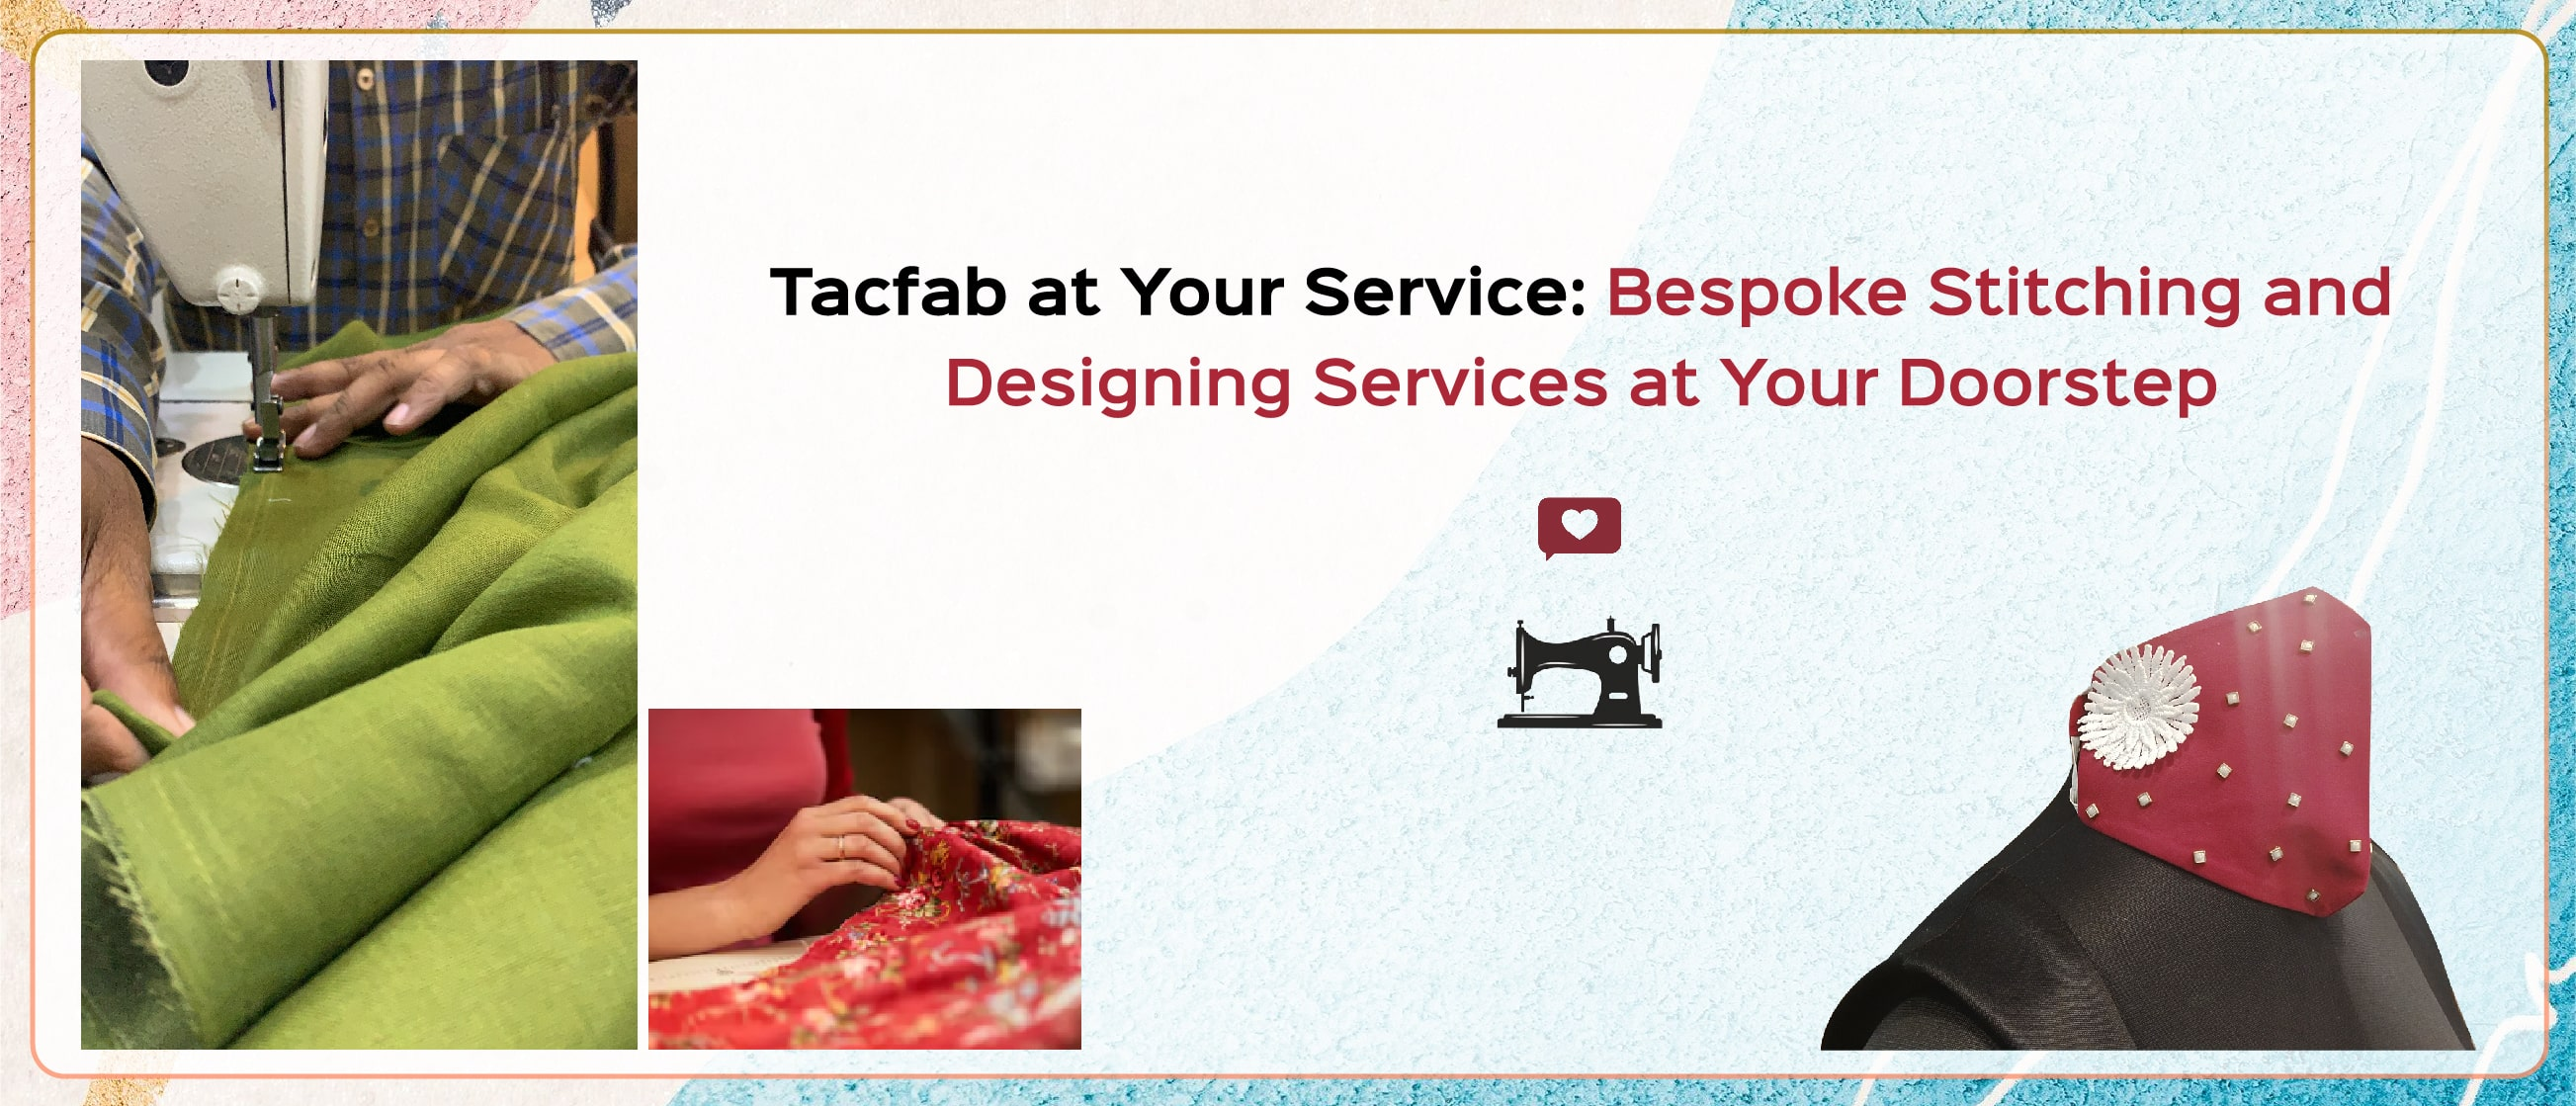 Tacfab at Your Service: Bespoke Stitching and Designing Services at Your Doorstep